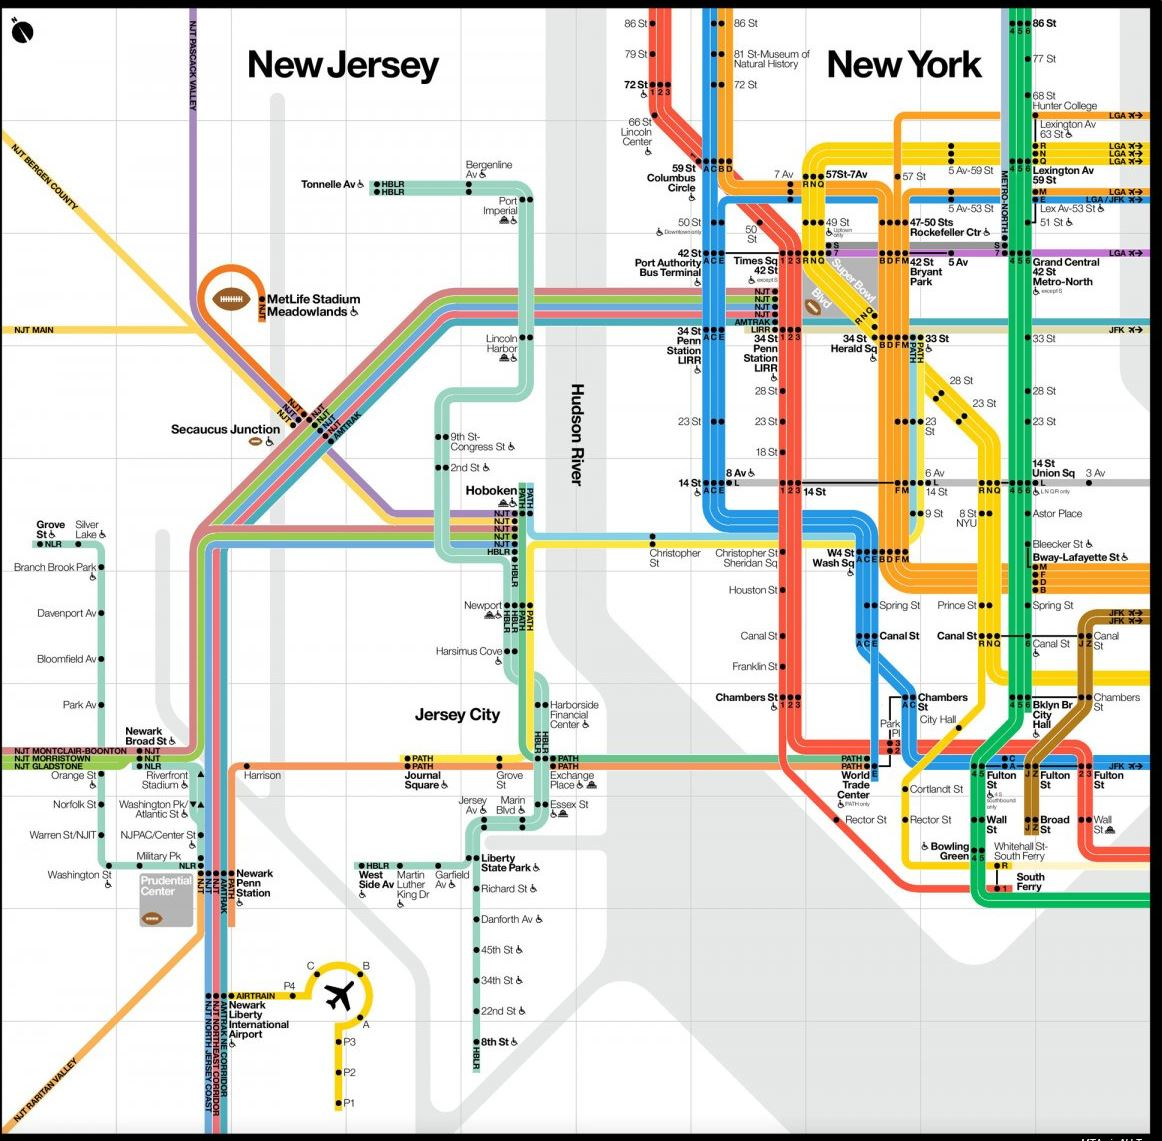 Nyc Subway Map Scan.Super Bowl Transit Perks Brand New Nyc Subway Maps For The Super